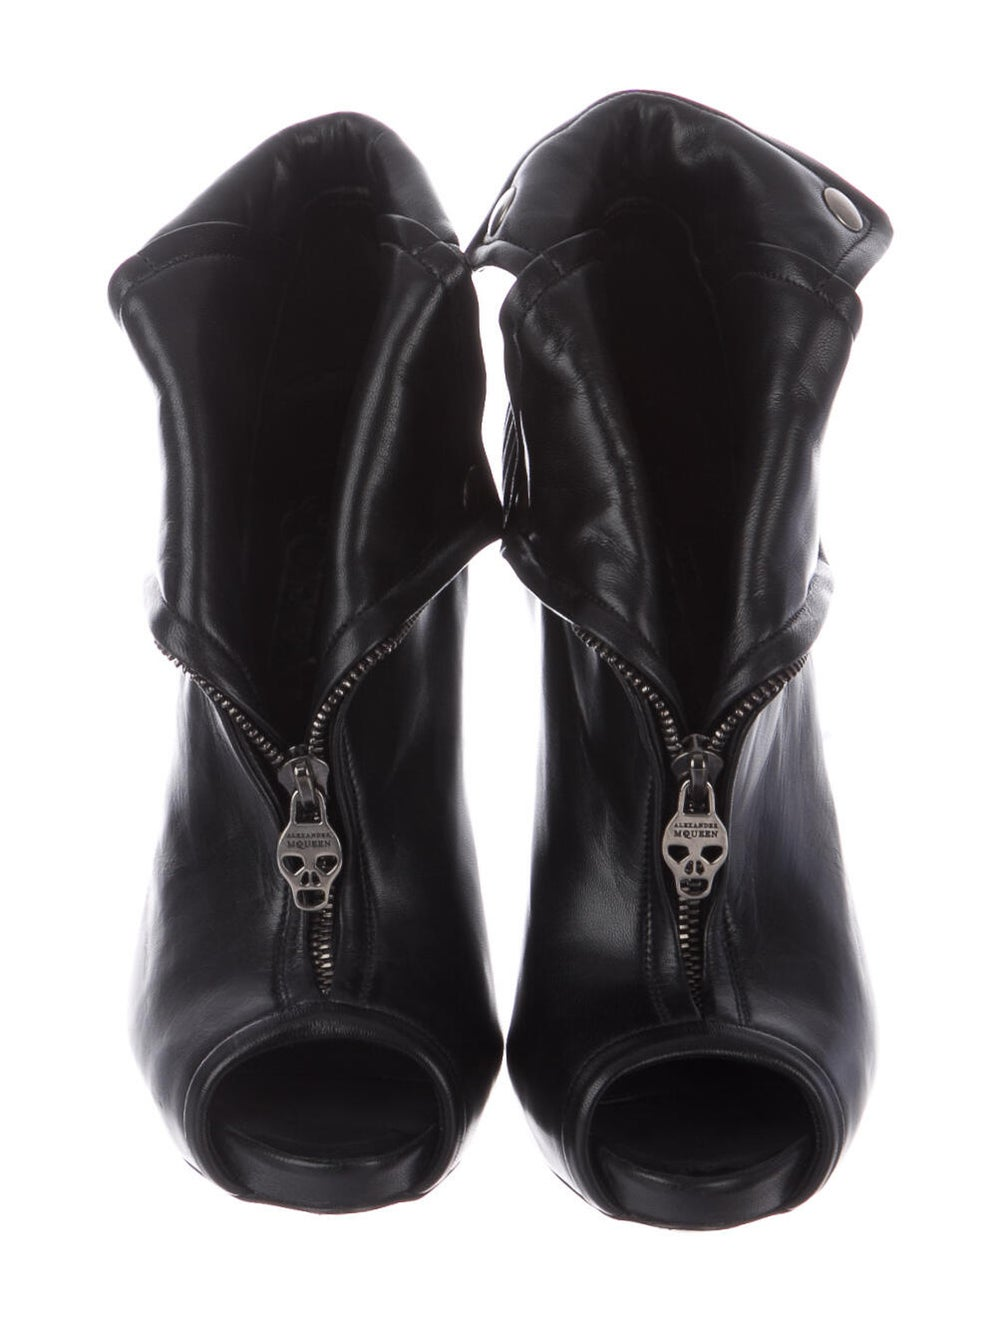 Alexander McQueen Leather Boots Black - image 3